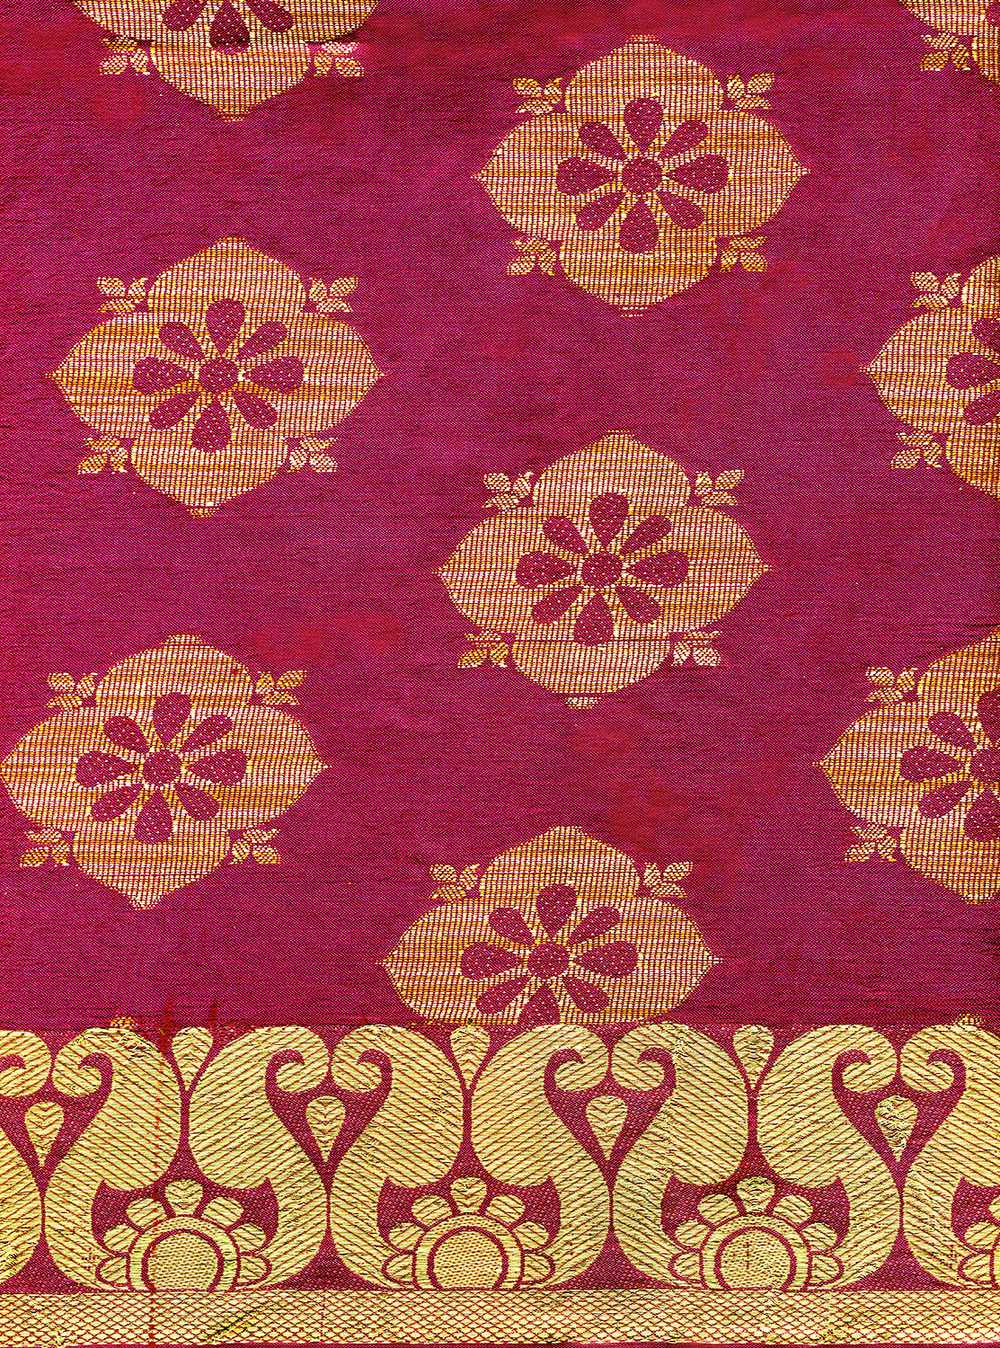 A textile piece from an Indian wedding sari